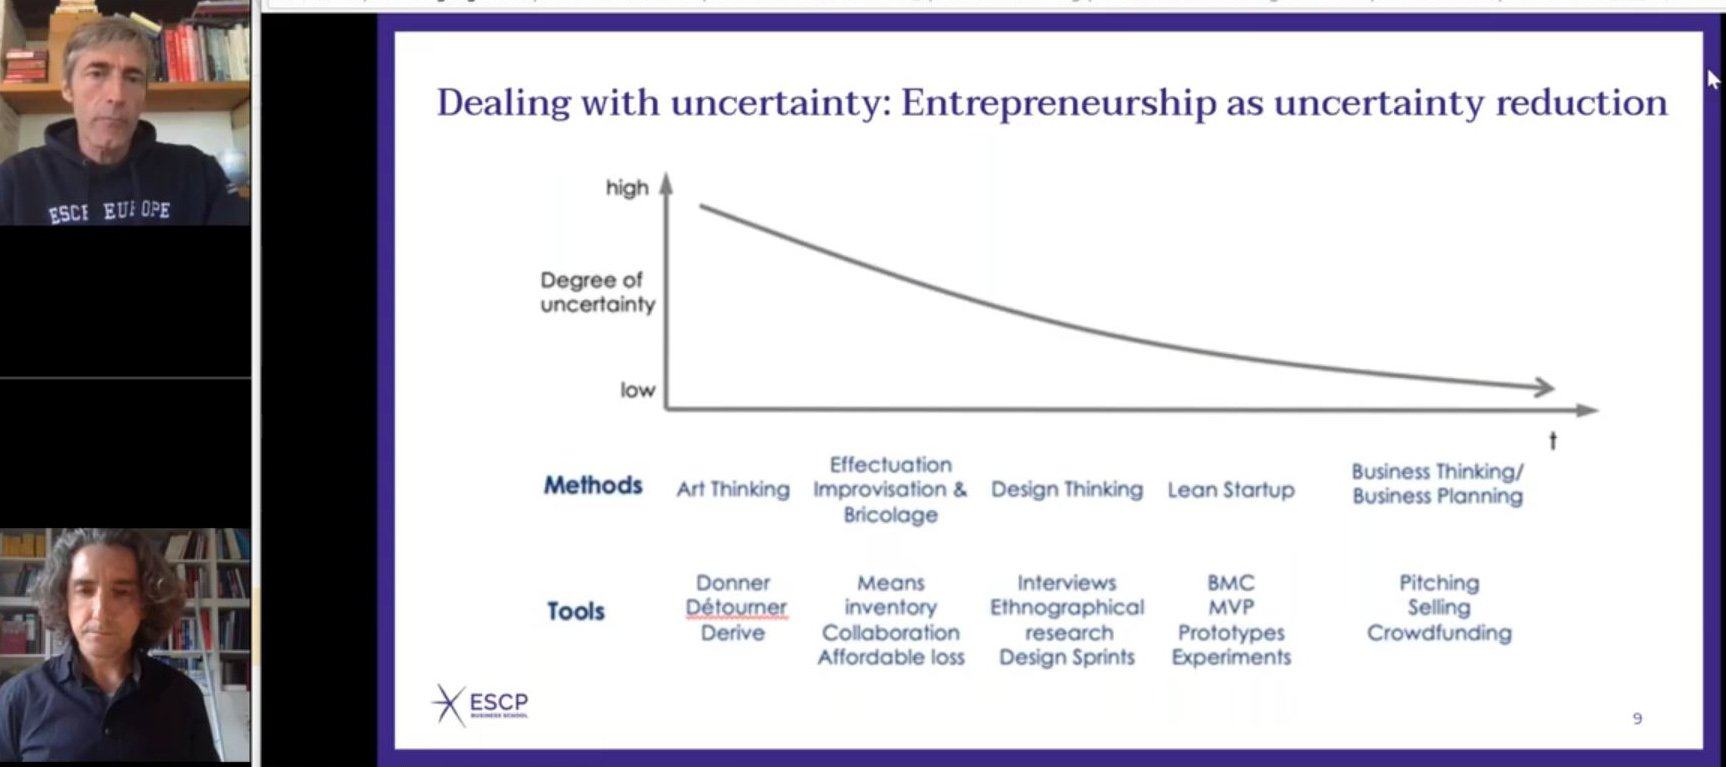 Entrepreneurial tools for different levels of uncertainty by Rene Mauer and Martin Kupp in an ESCP webinar